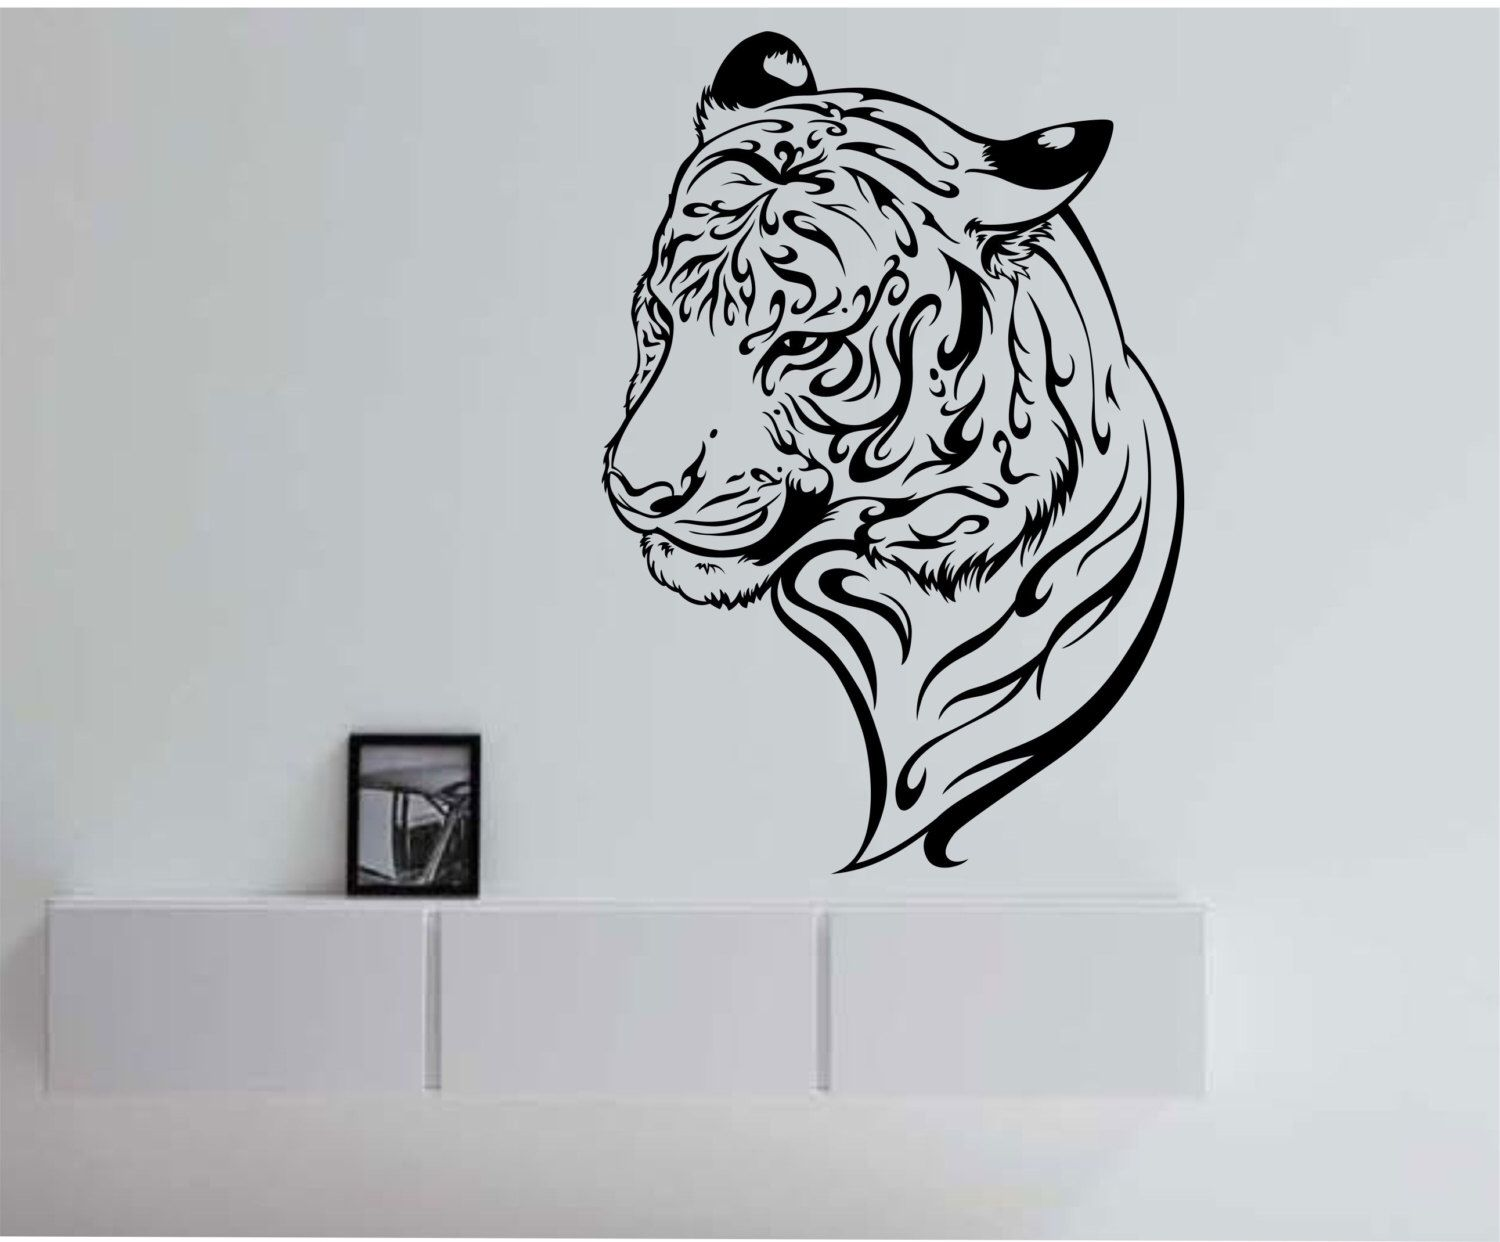 Tiger version 103 Vinyl Wall Decal Sticker Art Decor Bedroom Design Mural by StateOfTheWall on Etsy  sc 1 st  Pinterest & Tiger version 103 Vinyl Wall Decal Sticker Art Decor Bedroom Design ...